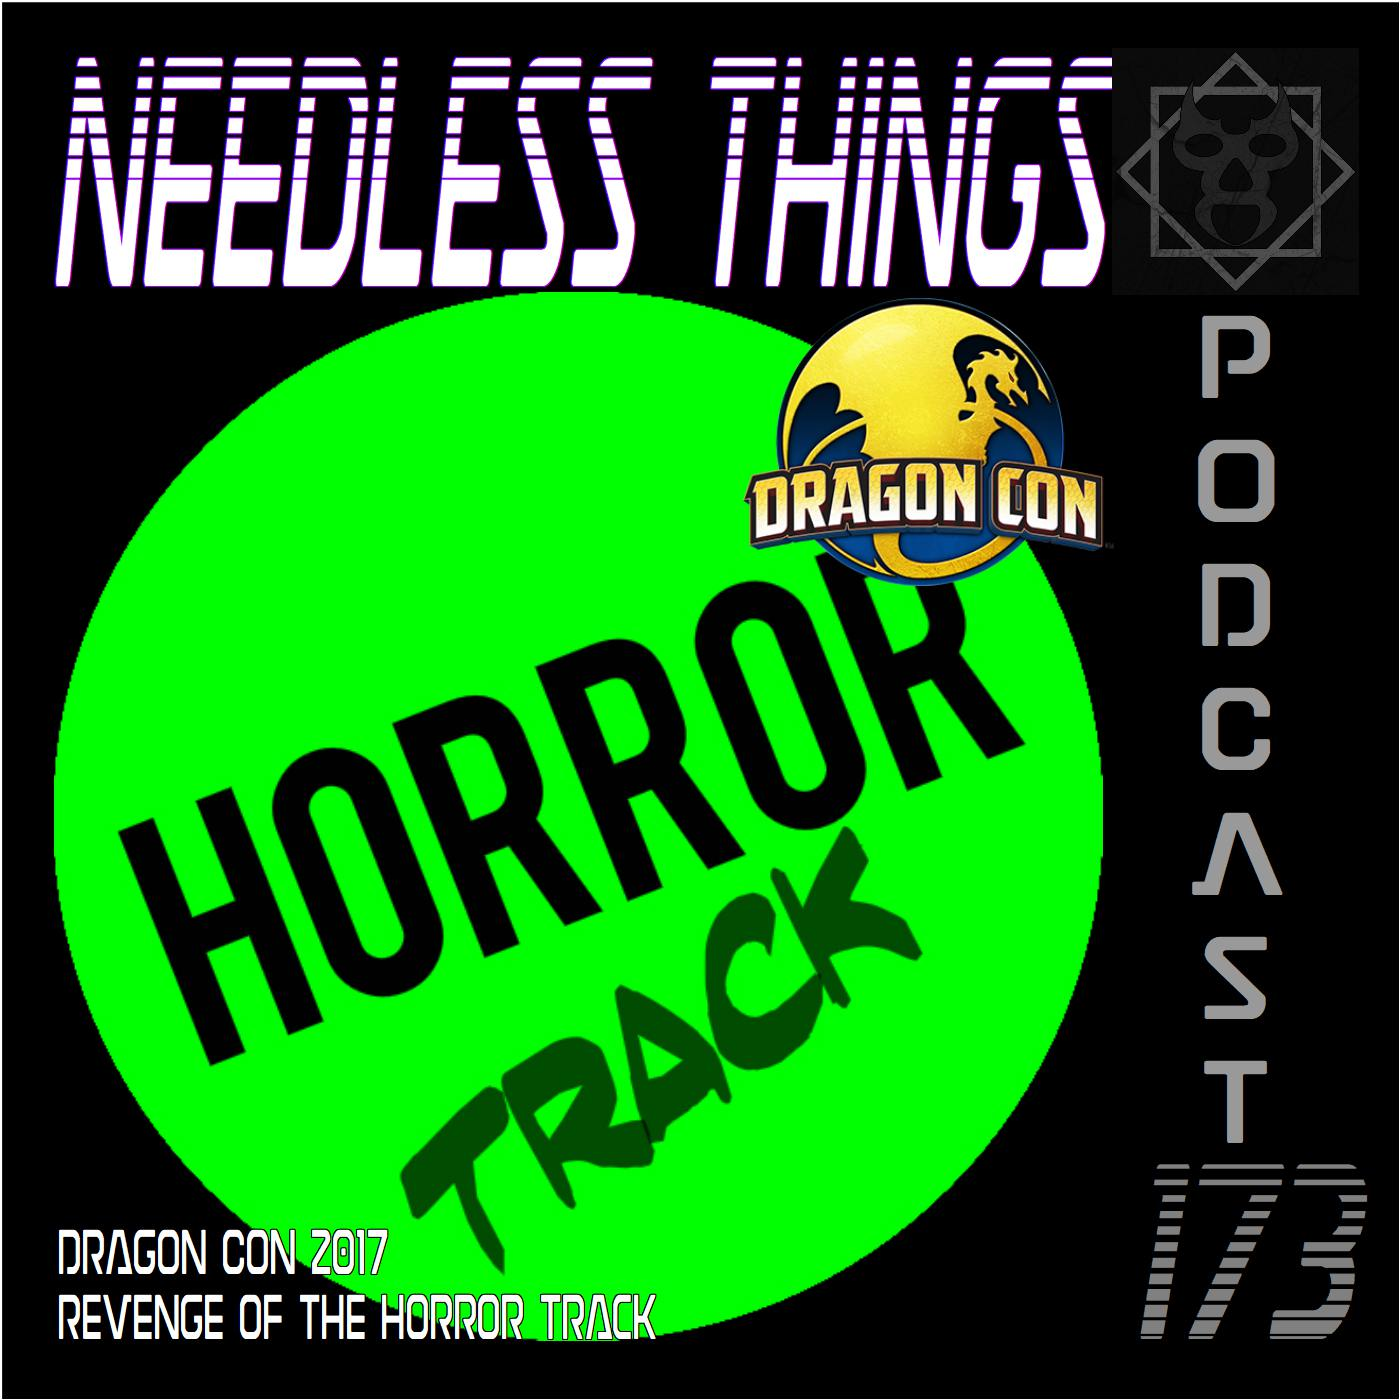 Needless Things Podcast 173 – Dragon Con 2017: Revenge of the Horror Track